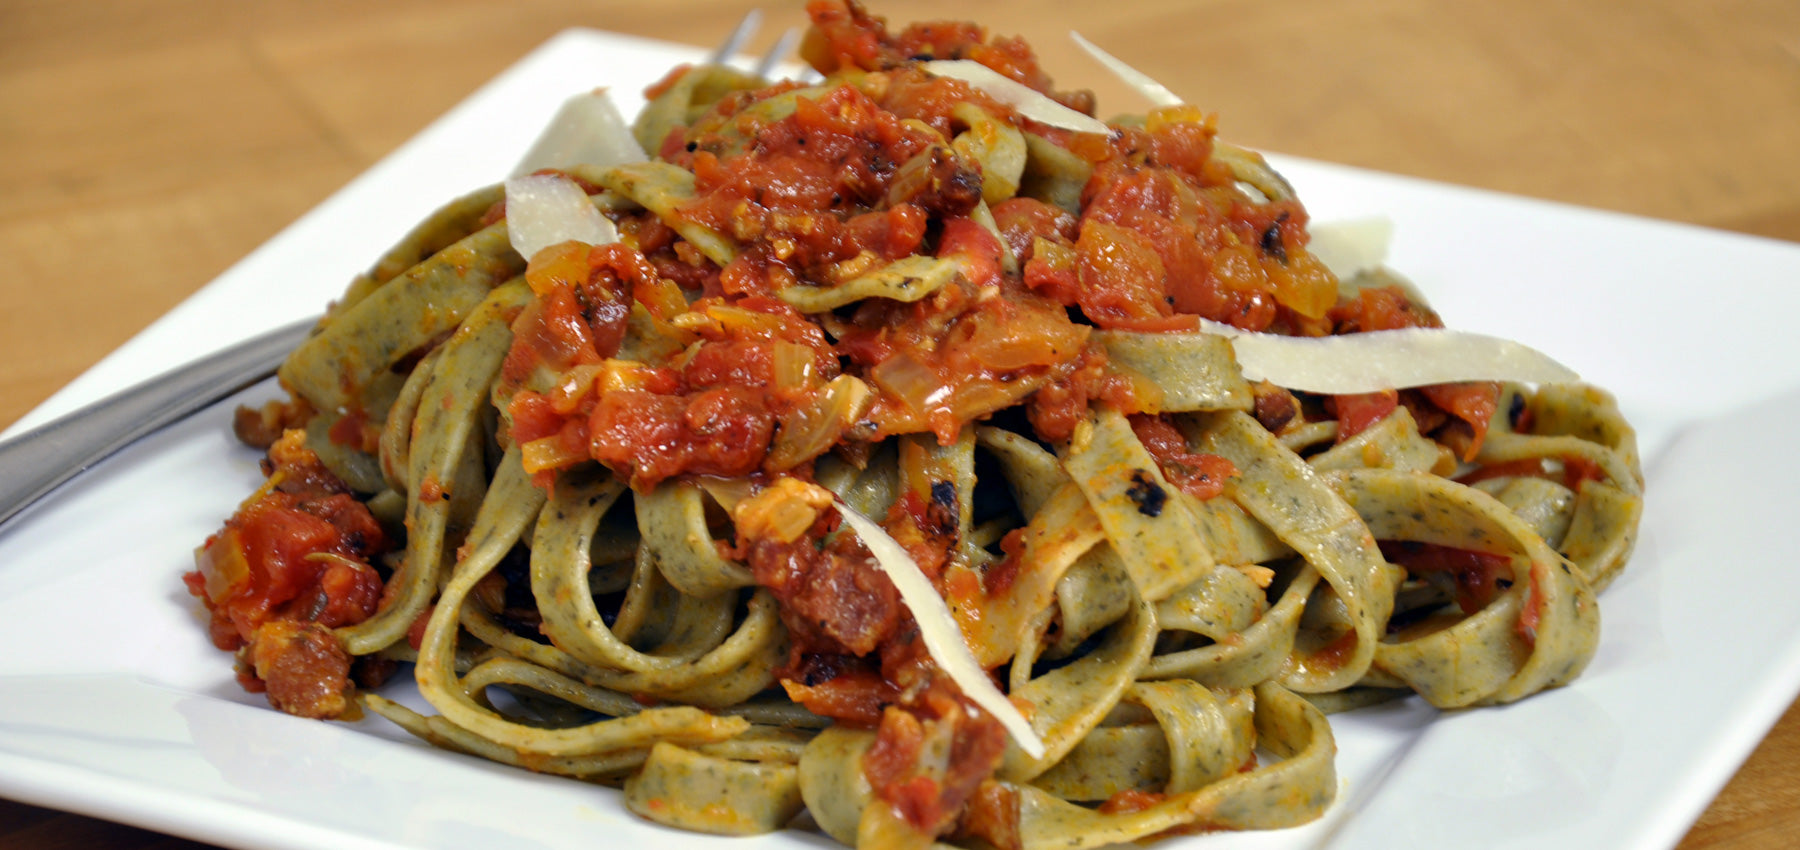 Roasted Garlic Herb Fettuccine tossed with Spiced Muir Glen Fire Roasted Tomatoes & Applewood Smoked Bacon Sauce